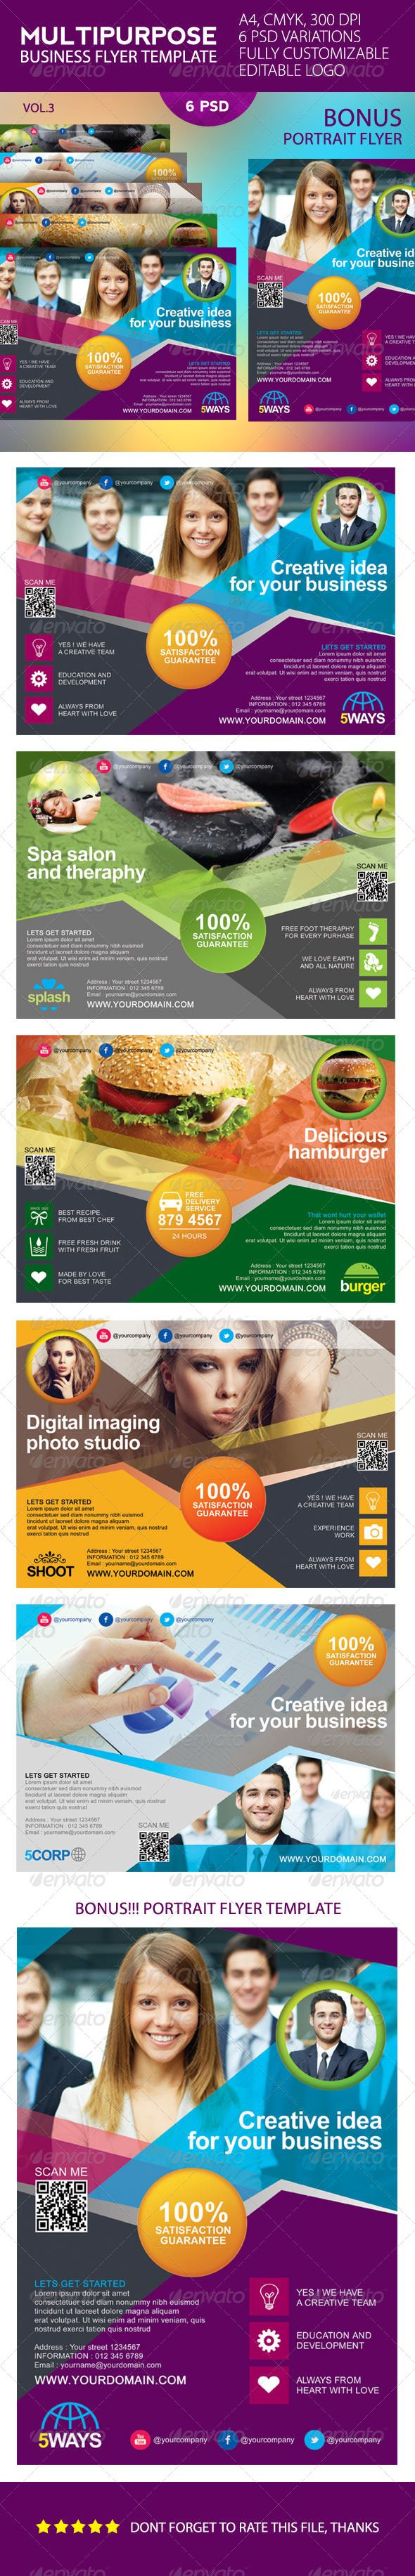 Multipurpose Business Flyer Template  #GraphicRiver